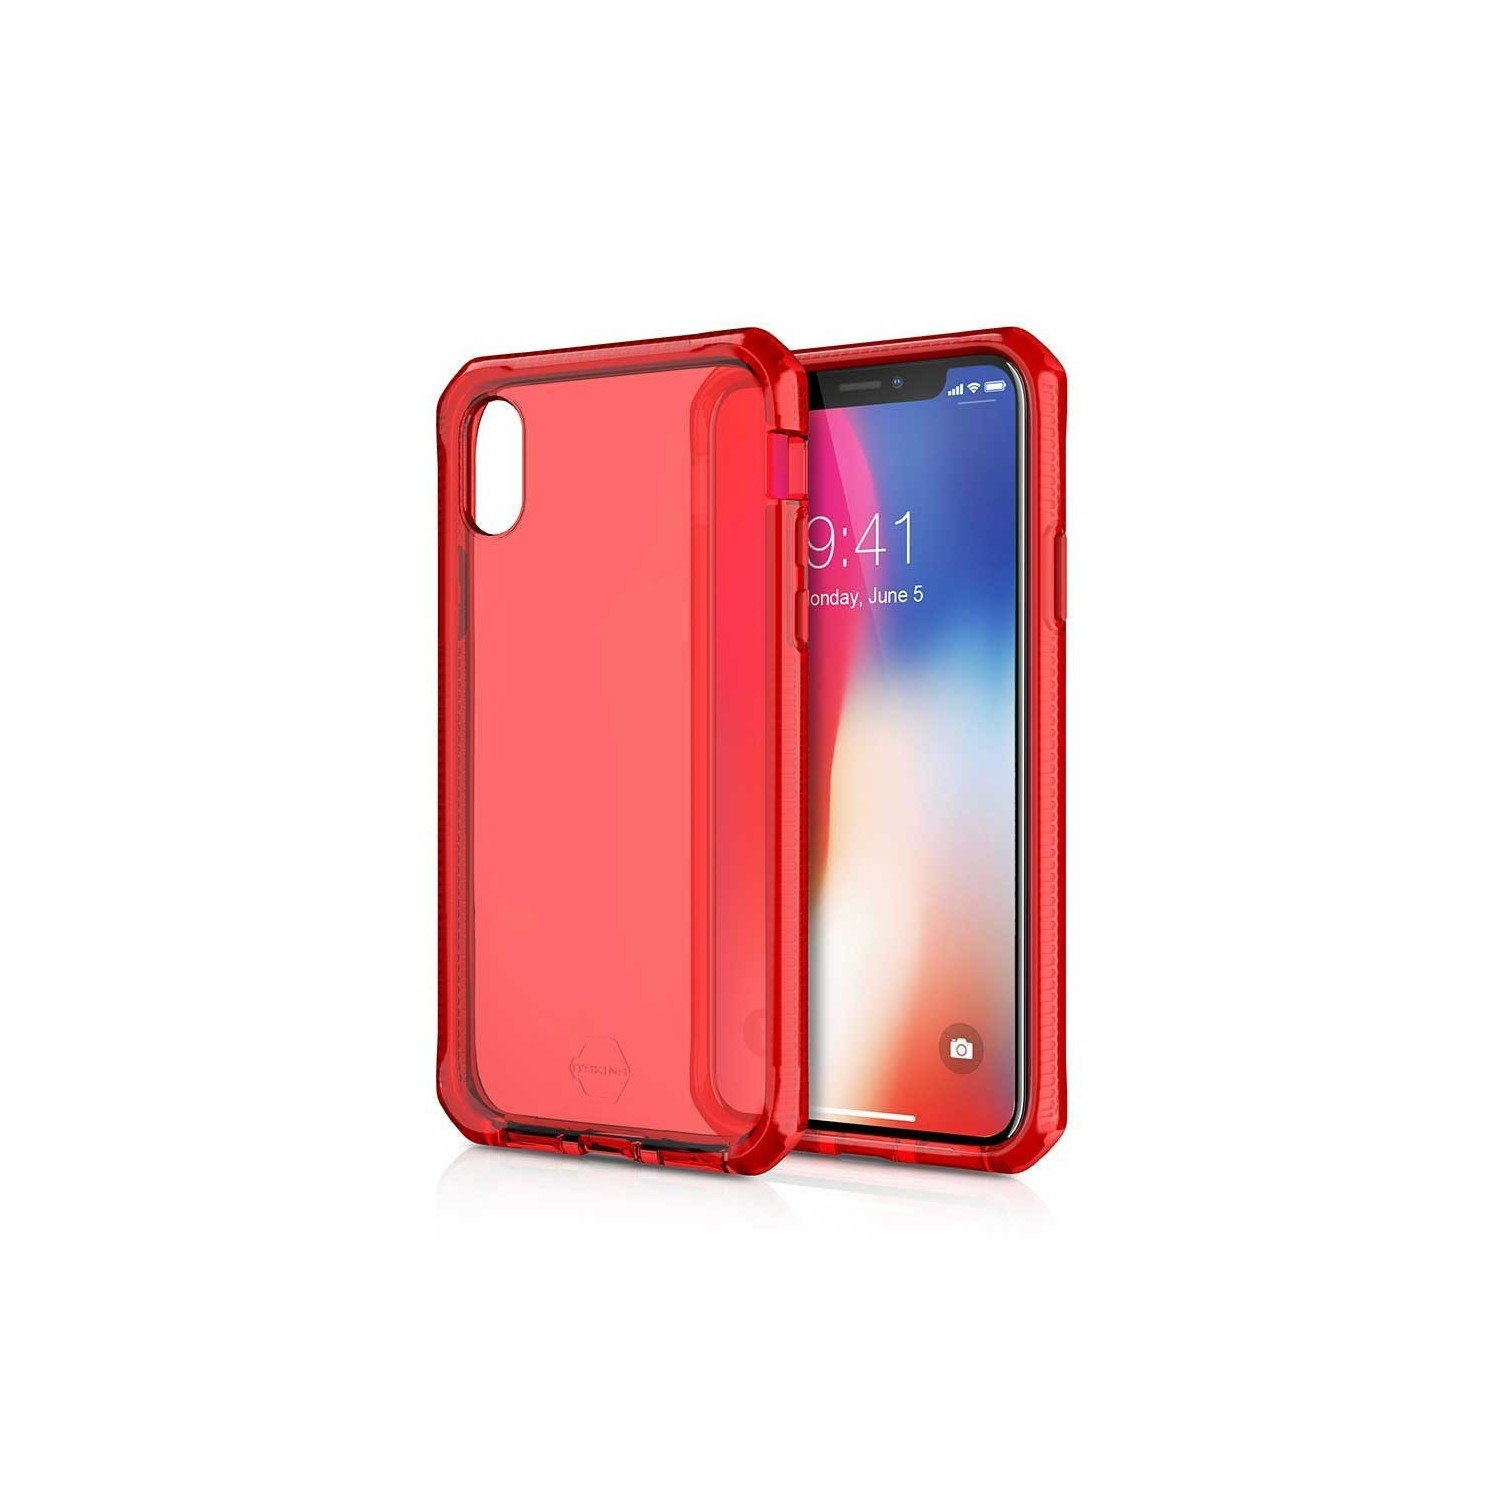 Case - ITSKINS Supreme case for iPhone Xs / X - Red